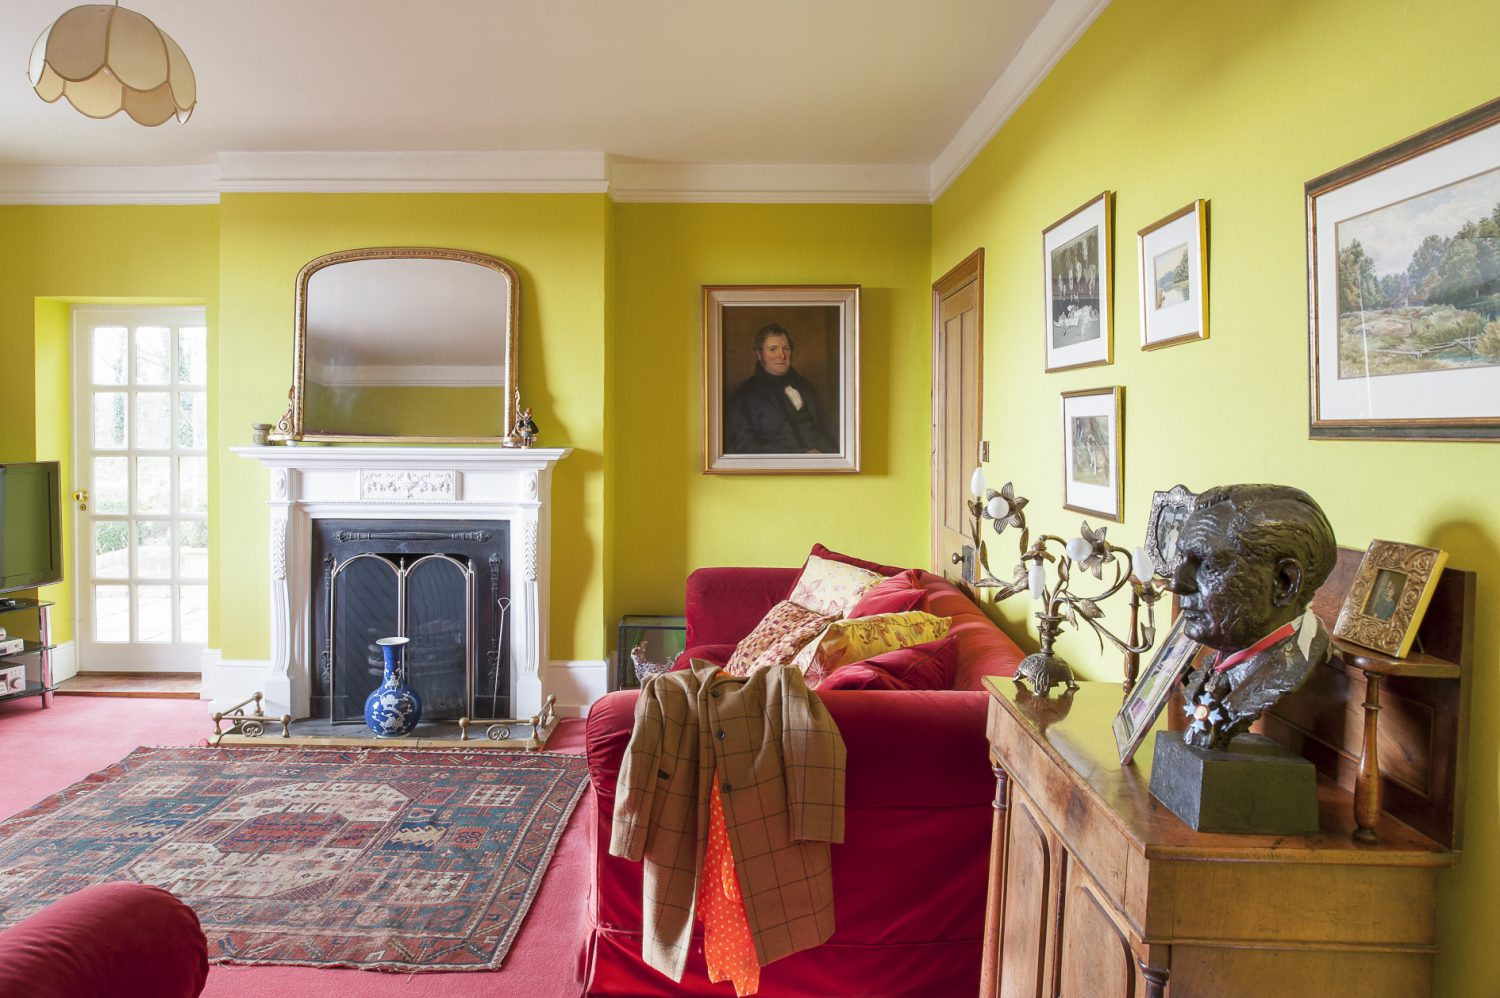 Over the drawing room fireplace is a Louis Philippe mirror and, flanking it, a portrait of Alex's great-grandfather nicely complemented by a bronze bust of his father on a cabinet by the door